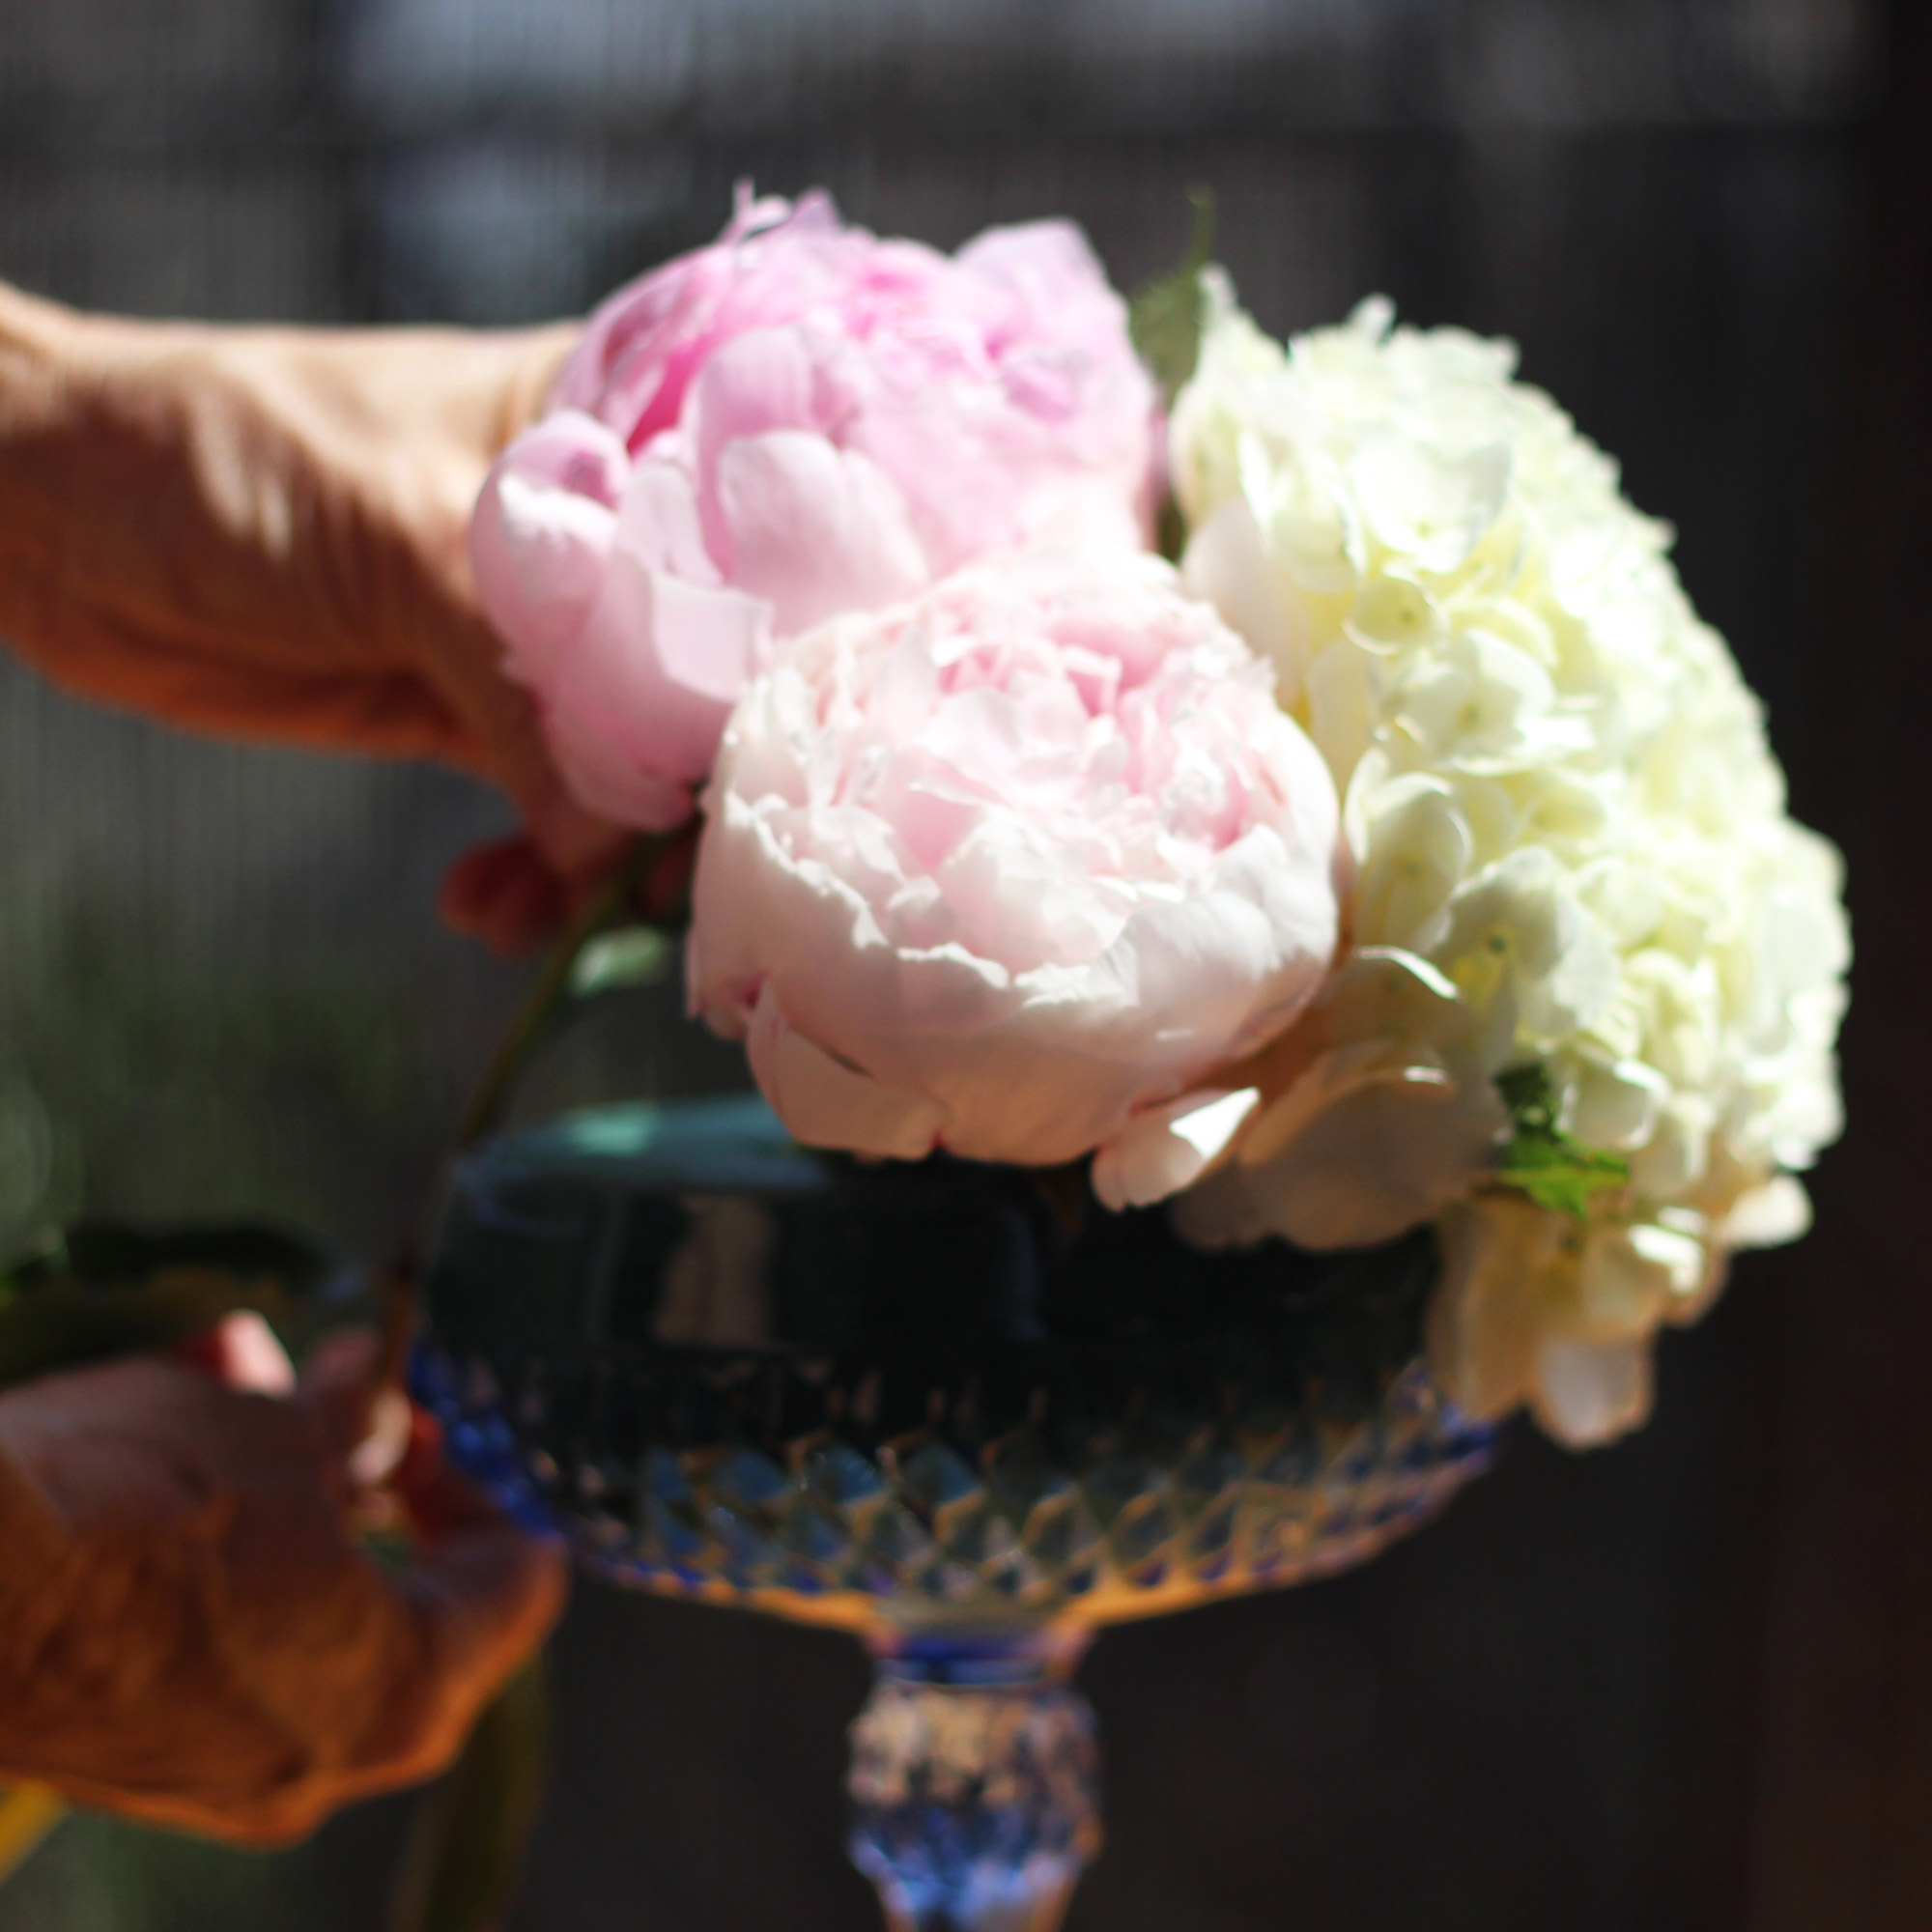 Measure next peony so it is higher. It will go in the middle.